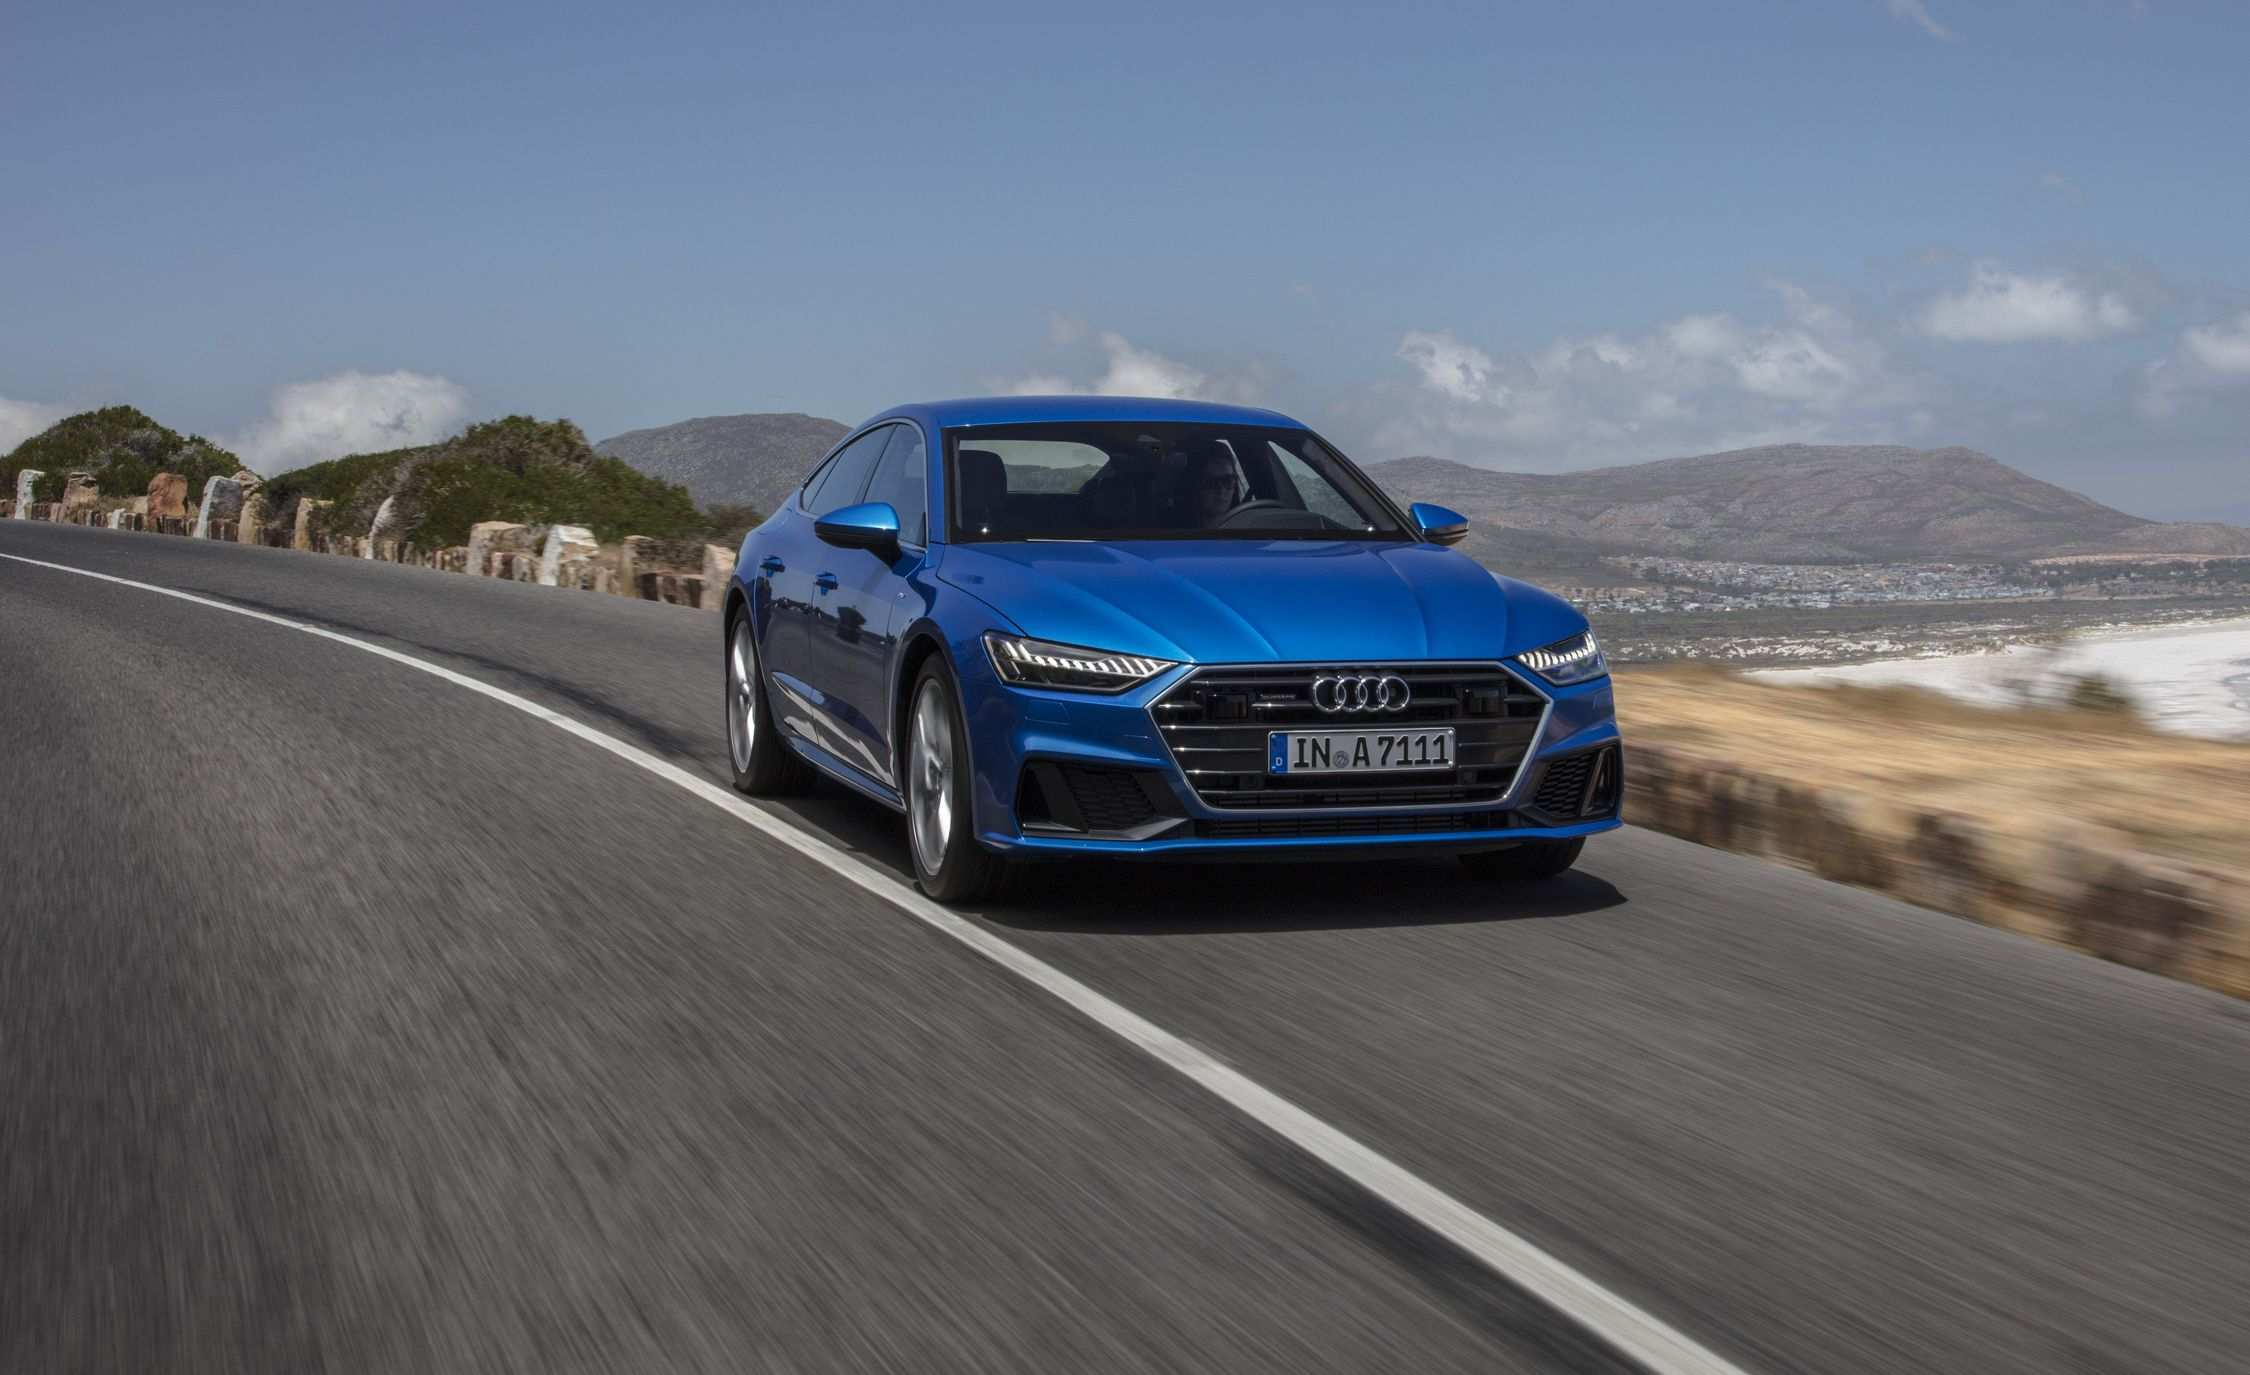 70 Best Review 2019 Audi A7 Review Ratings for 2019 Audi A7 Review